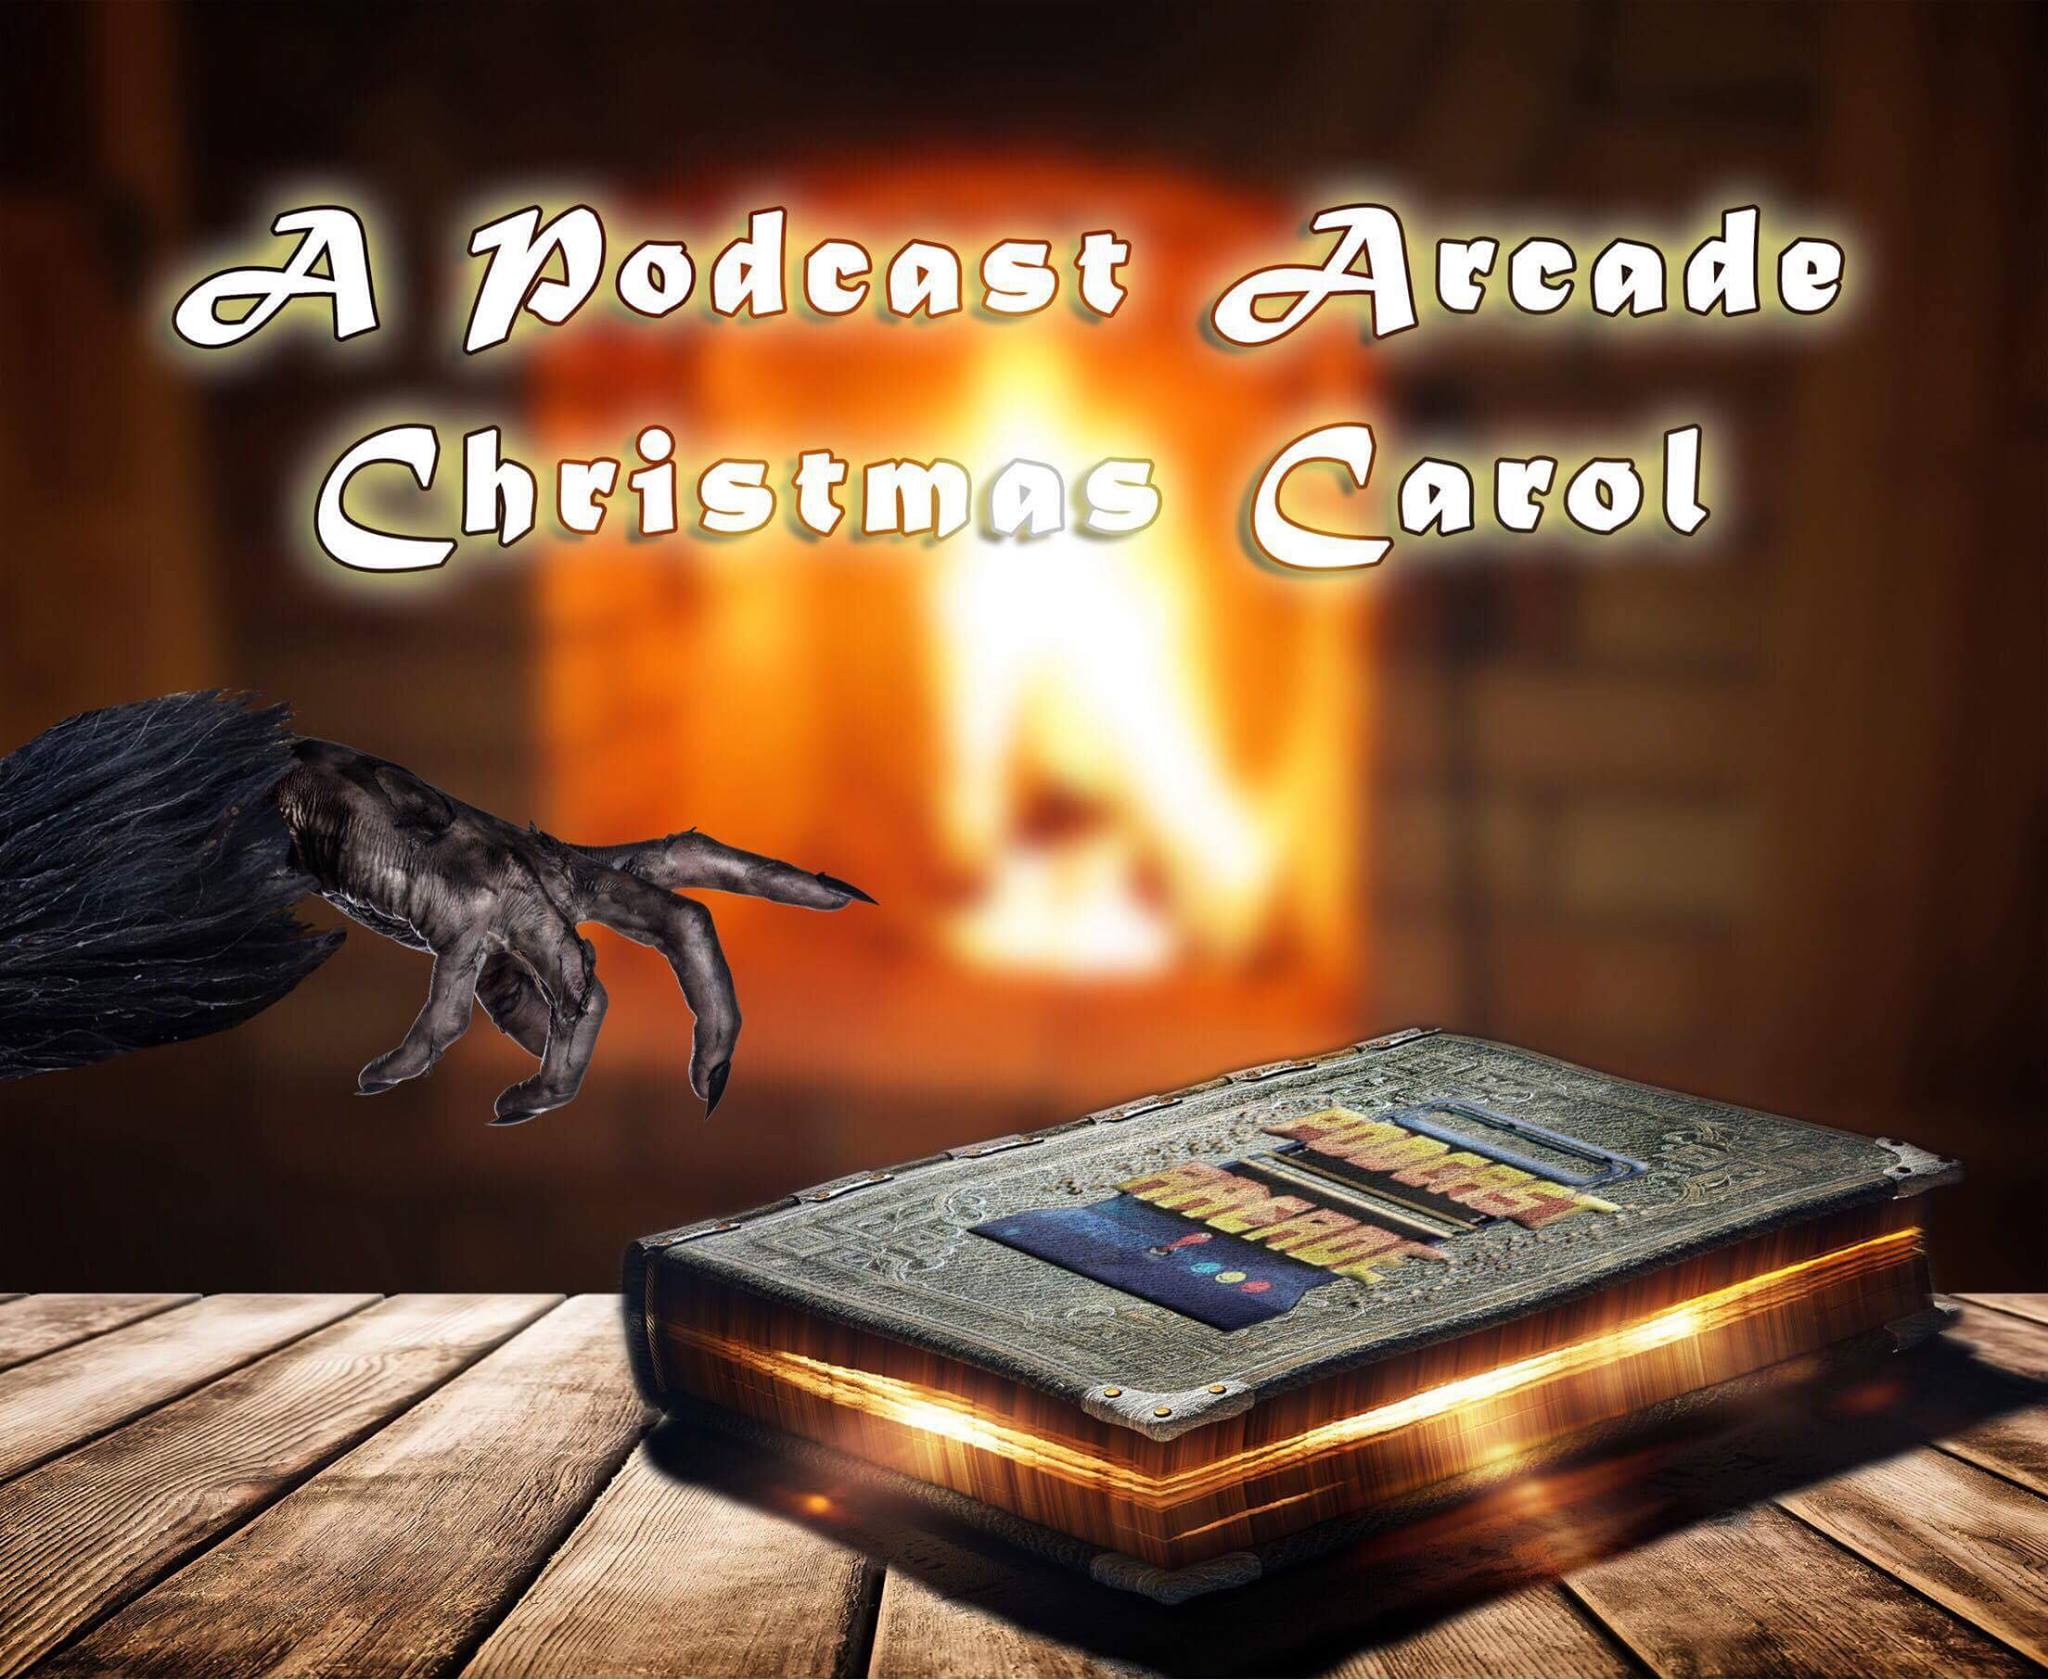 Ep 98 - The Podcast Arcade's Christmas Carol